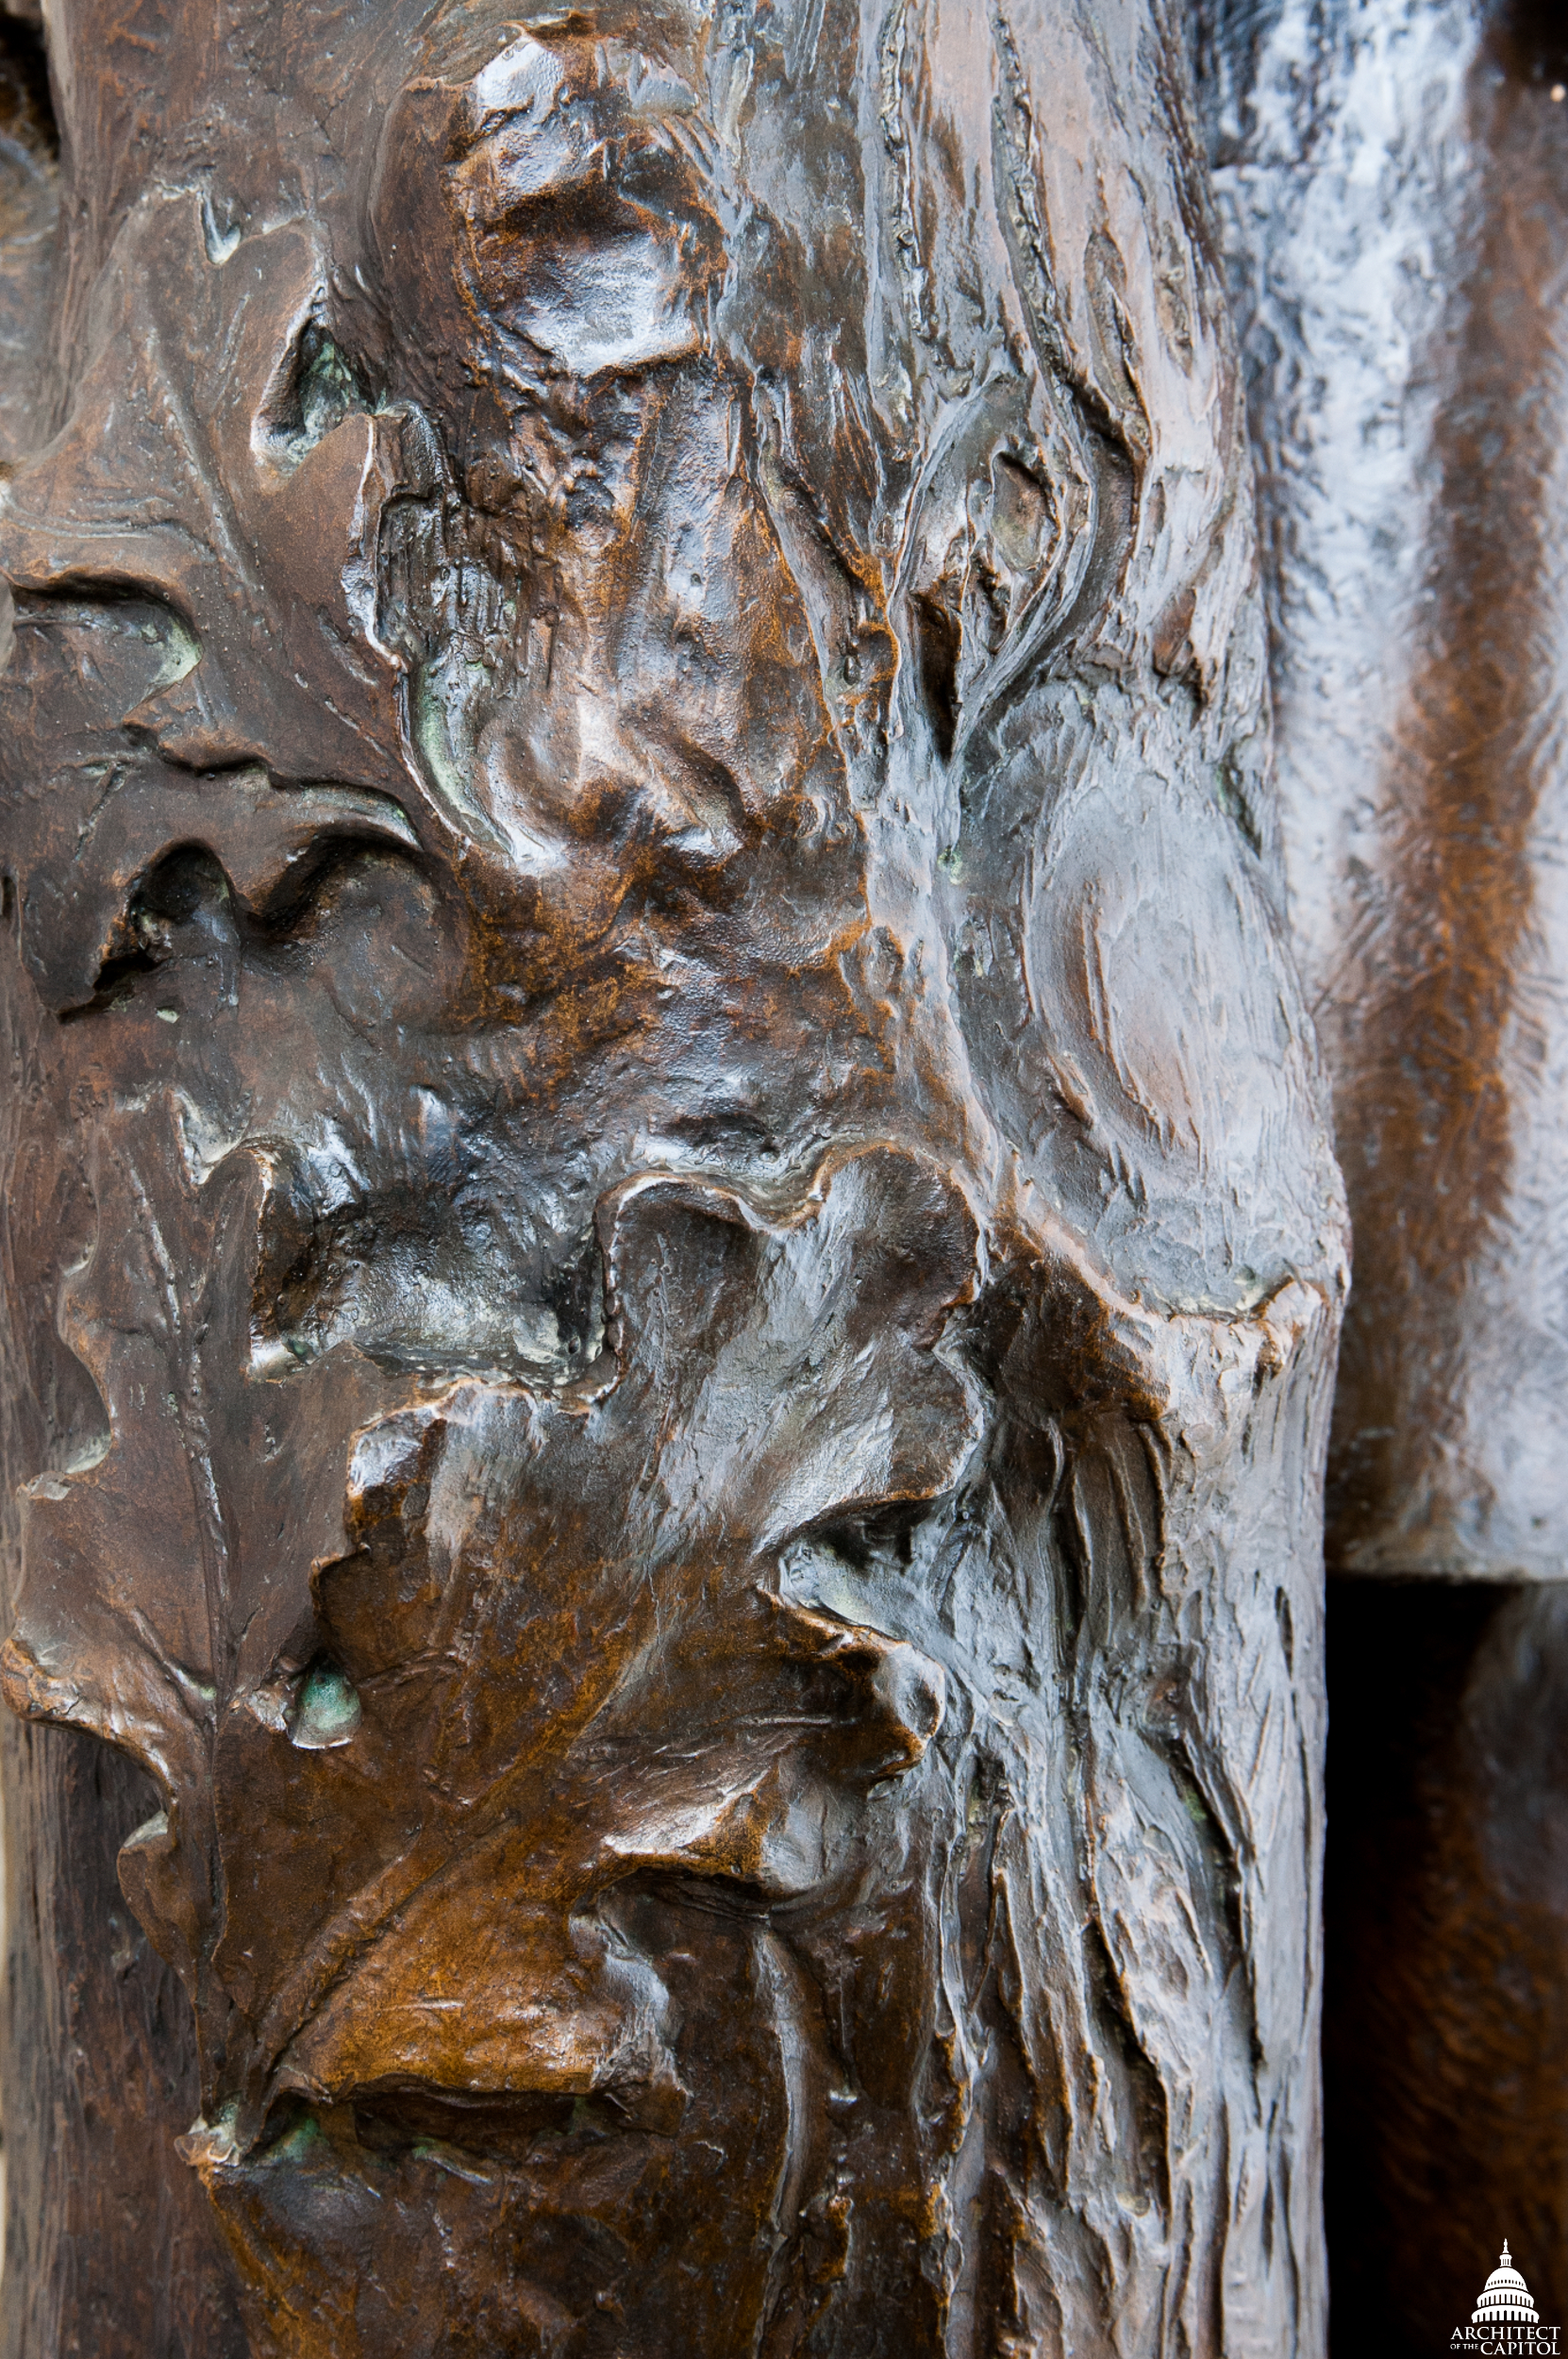 Up-close photo of tree trunk detail on J. Sterling Morton's statue in the U.S. Capitol.